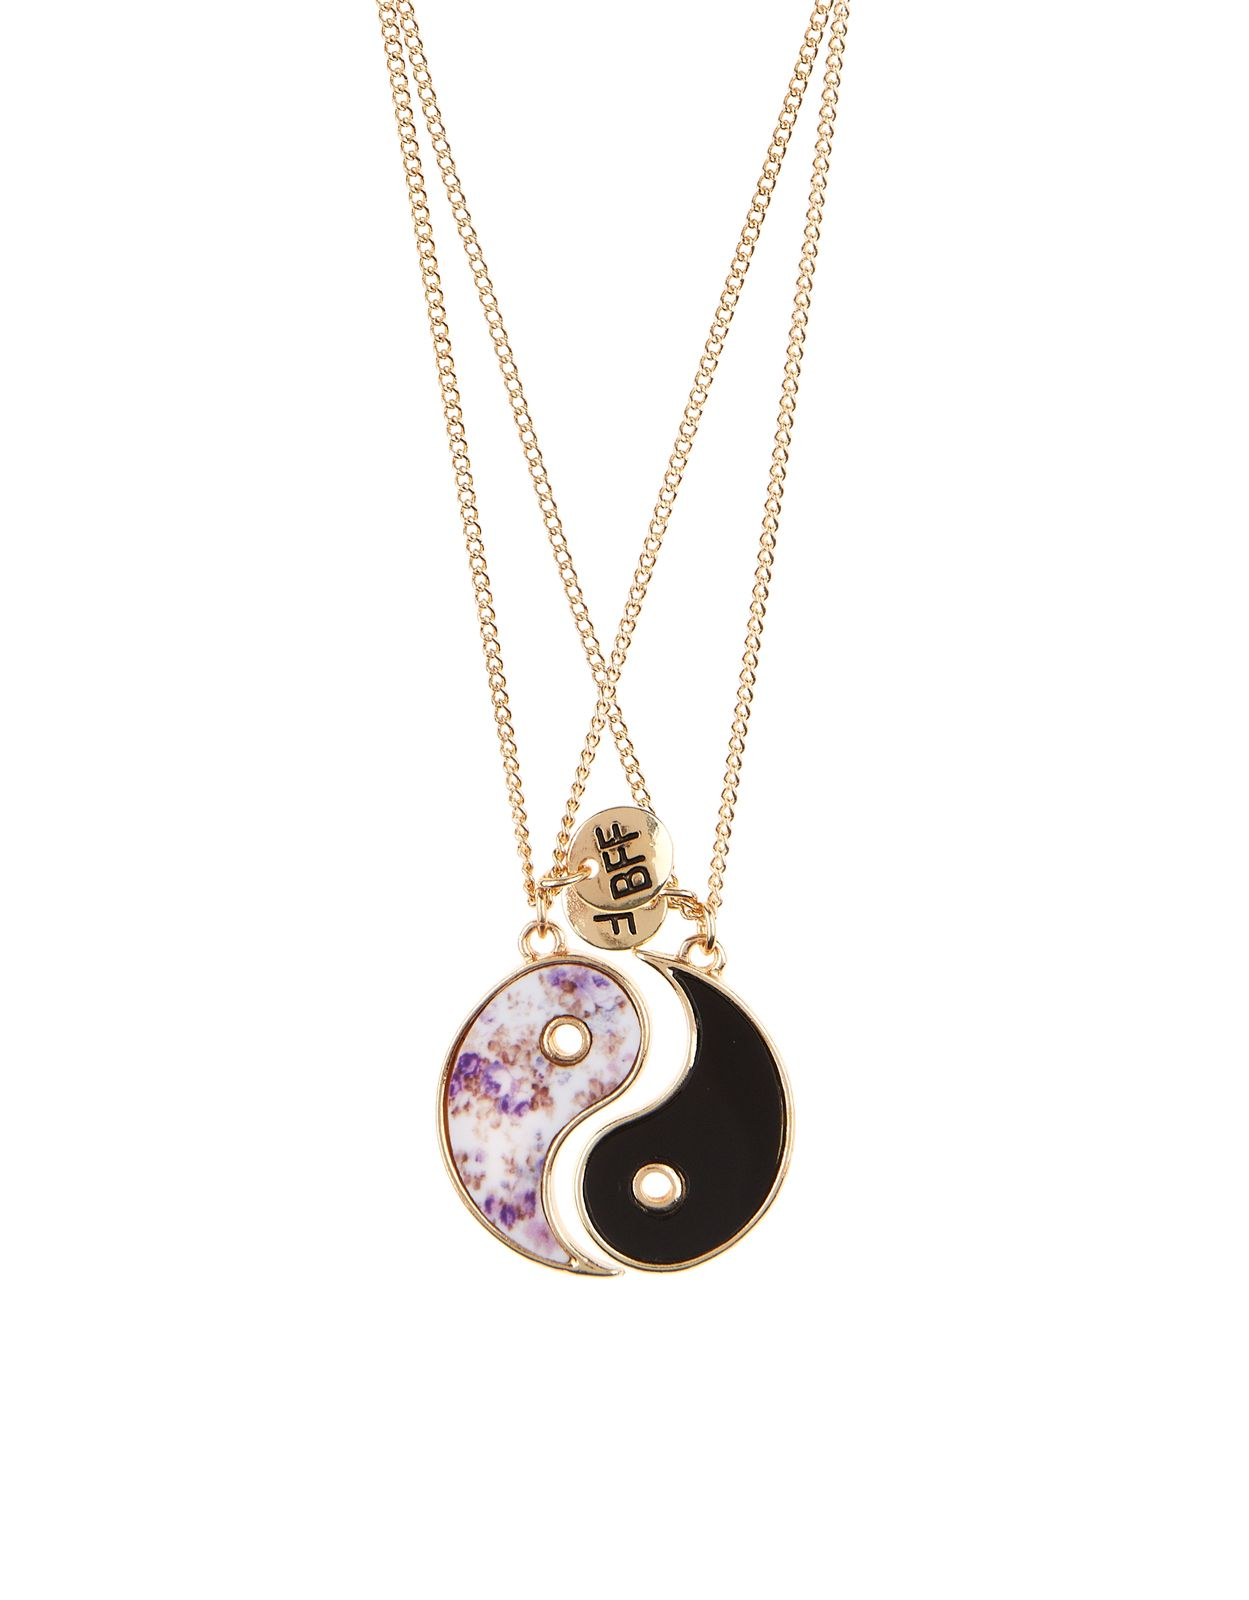 6bab2b606 One for you, one for your bestie: this set of two friendship necklaces are  designed with ying-yang pendants and 'BFF' embossed disc charms.